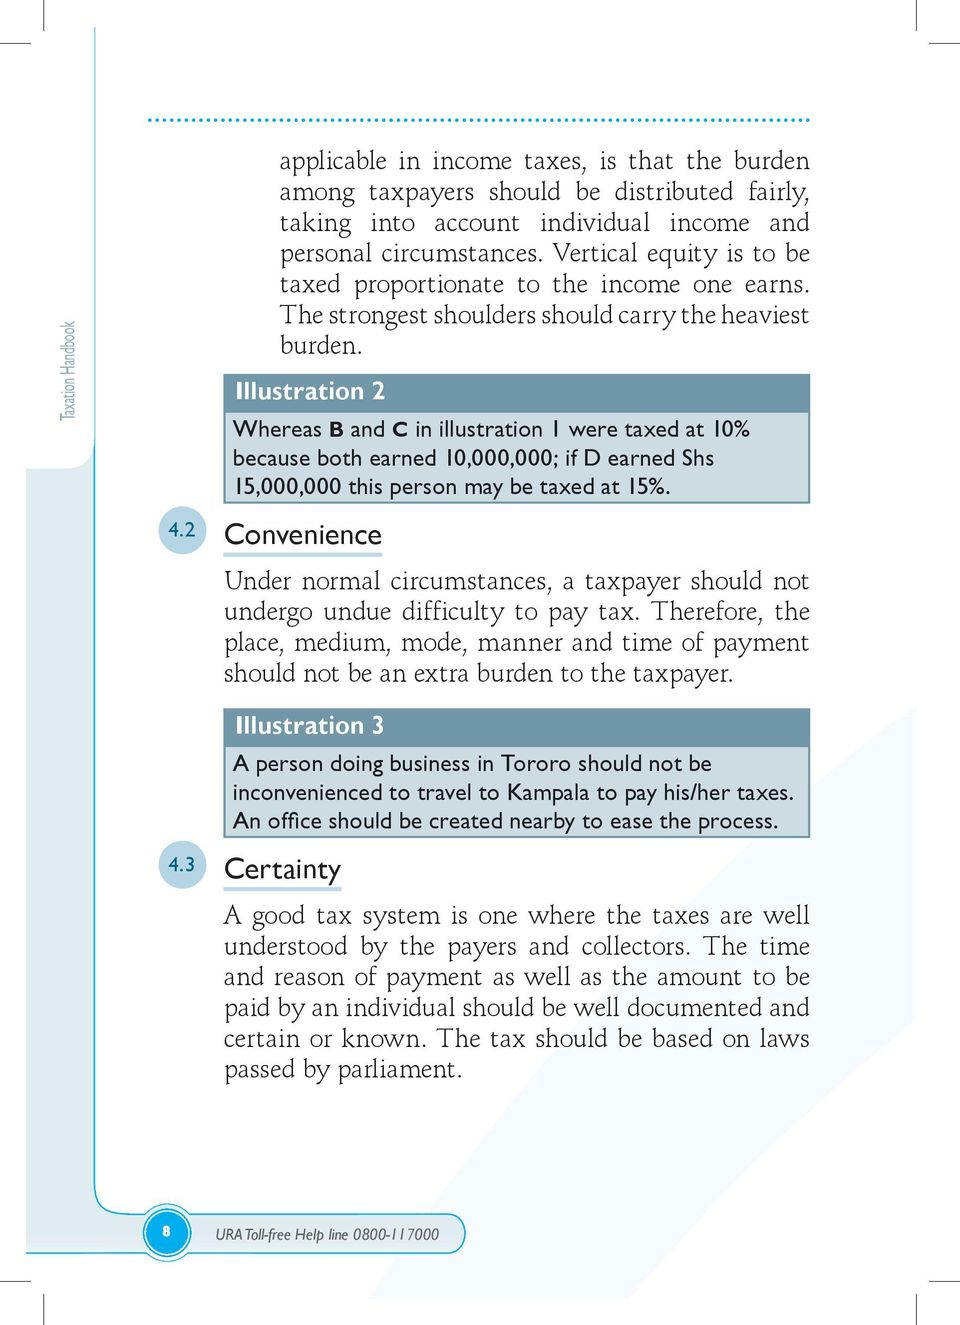 Illustration 2 Whereas B and C in illustration 1 were taxed at 10% because both earned 10,000,000; if D earned Shs 15,000,000 this person may be taxed at 15%. 4.